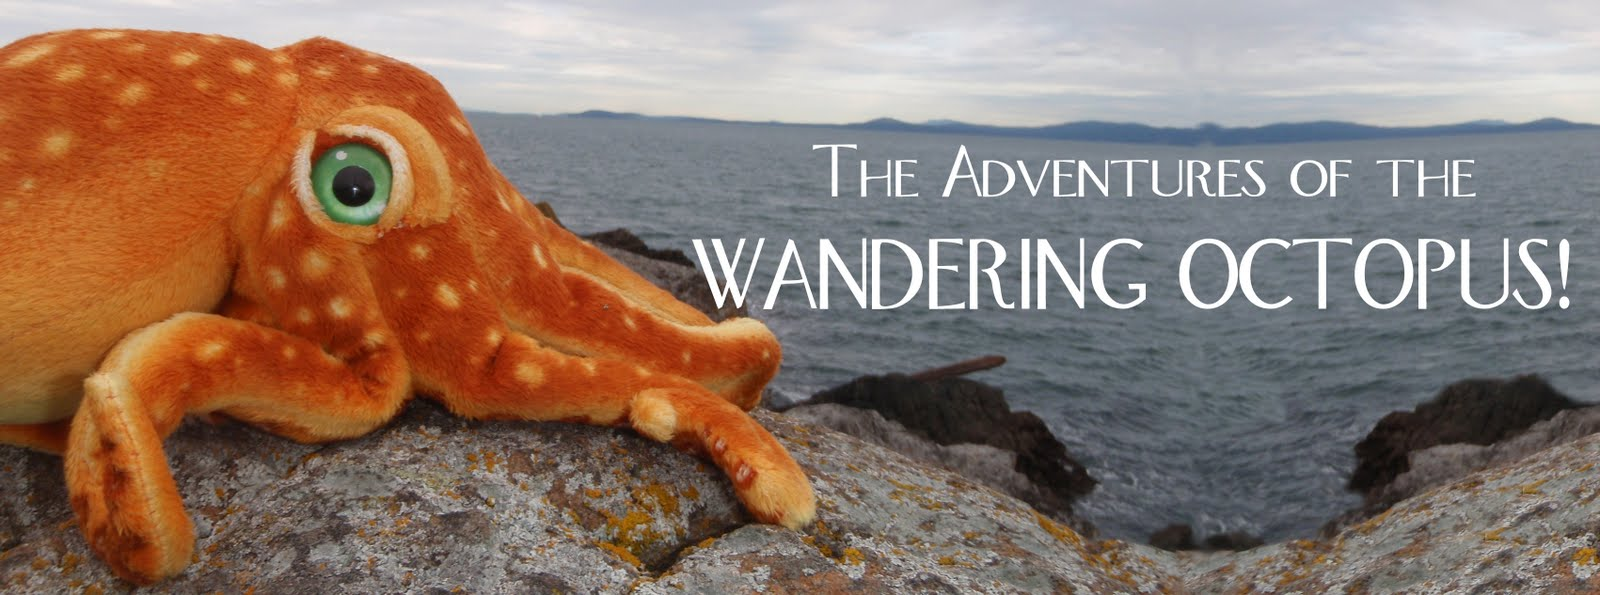 The Adventures of the Wandering Octopus